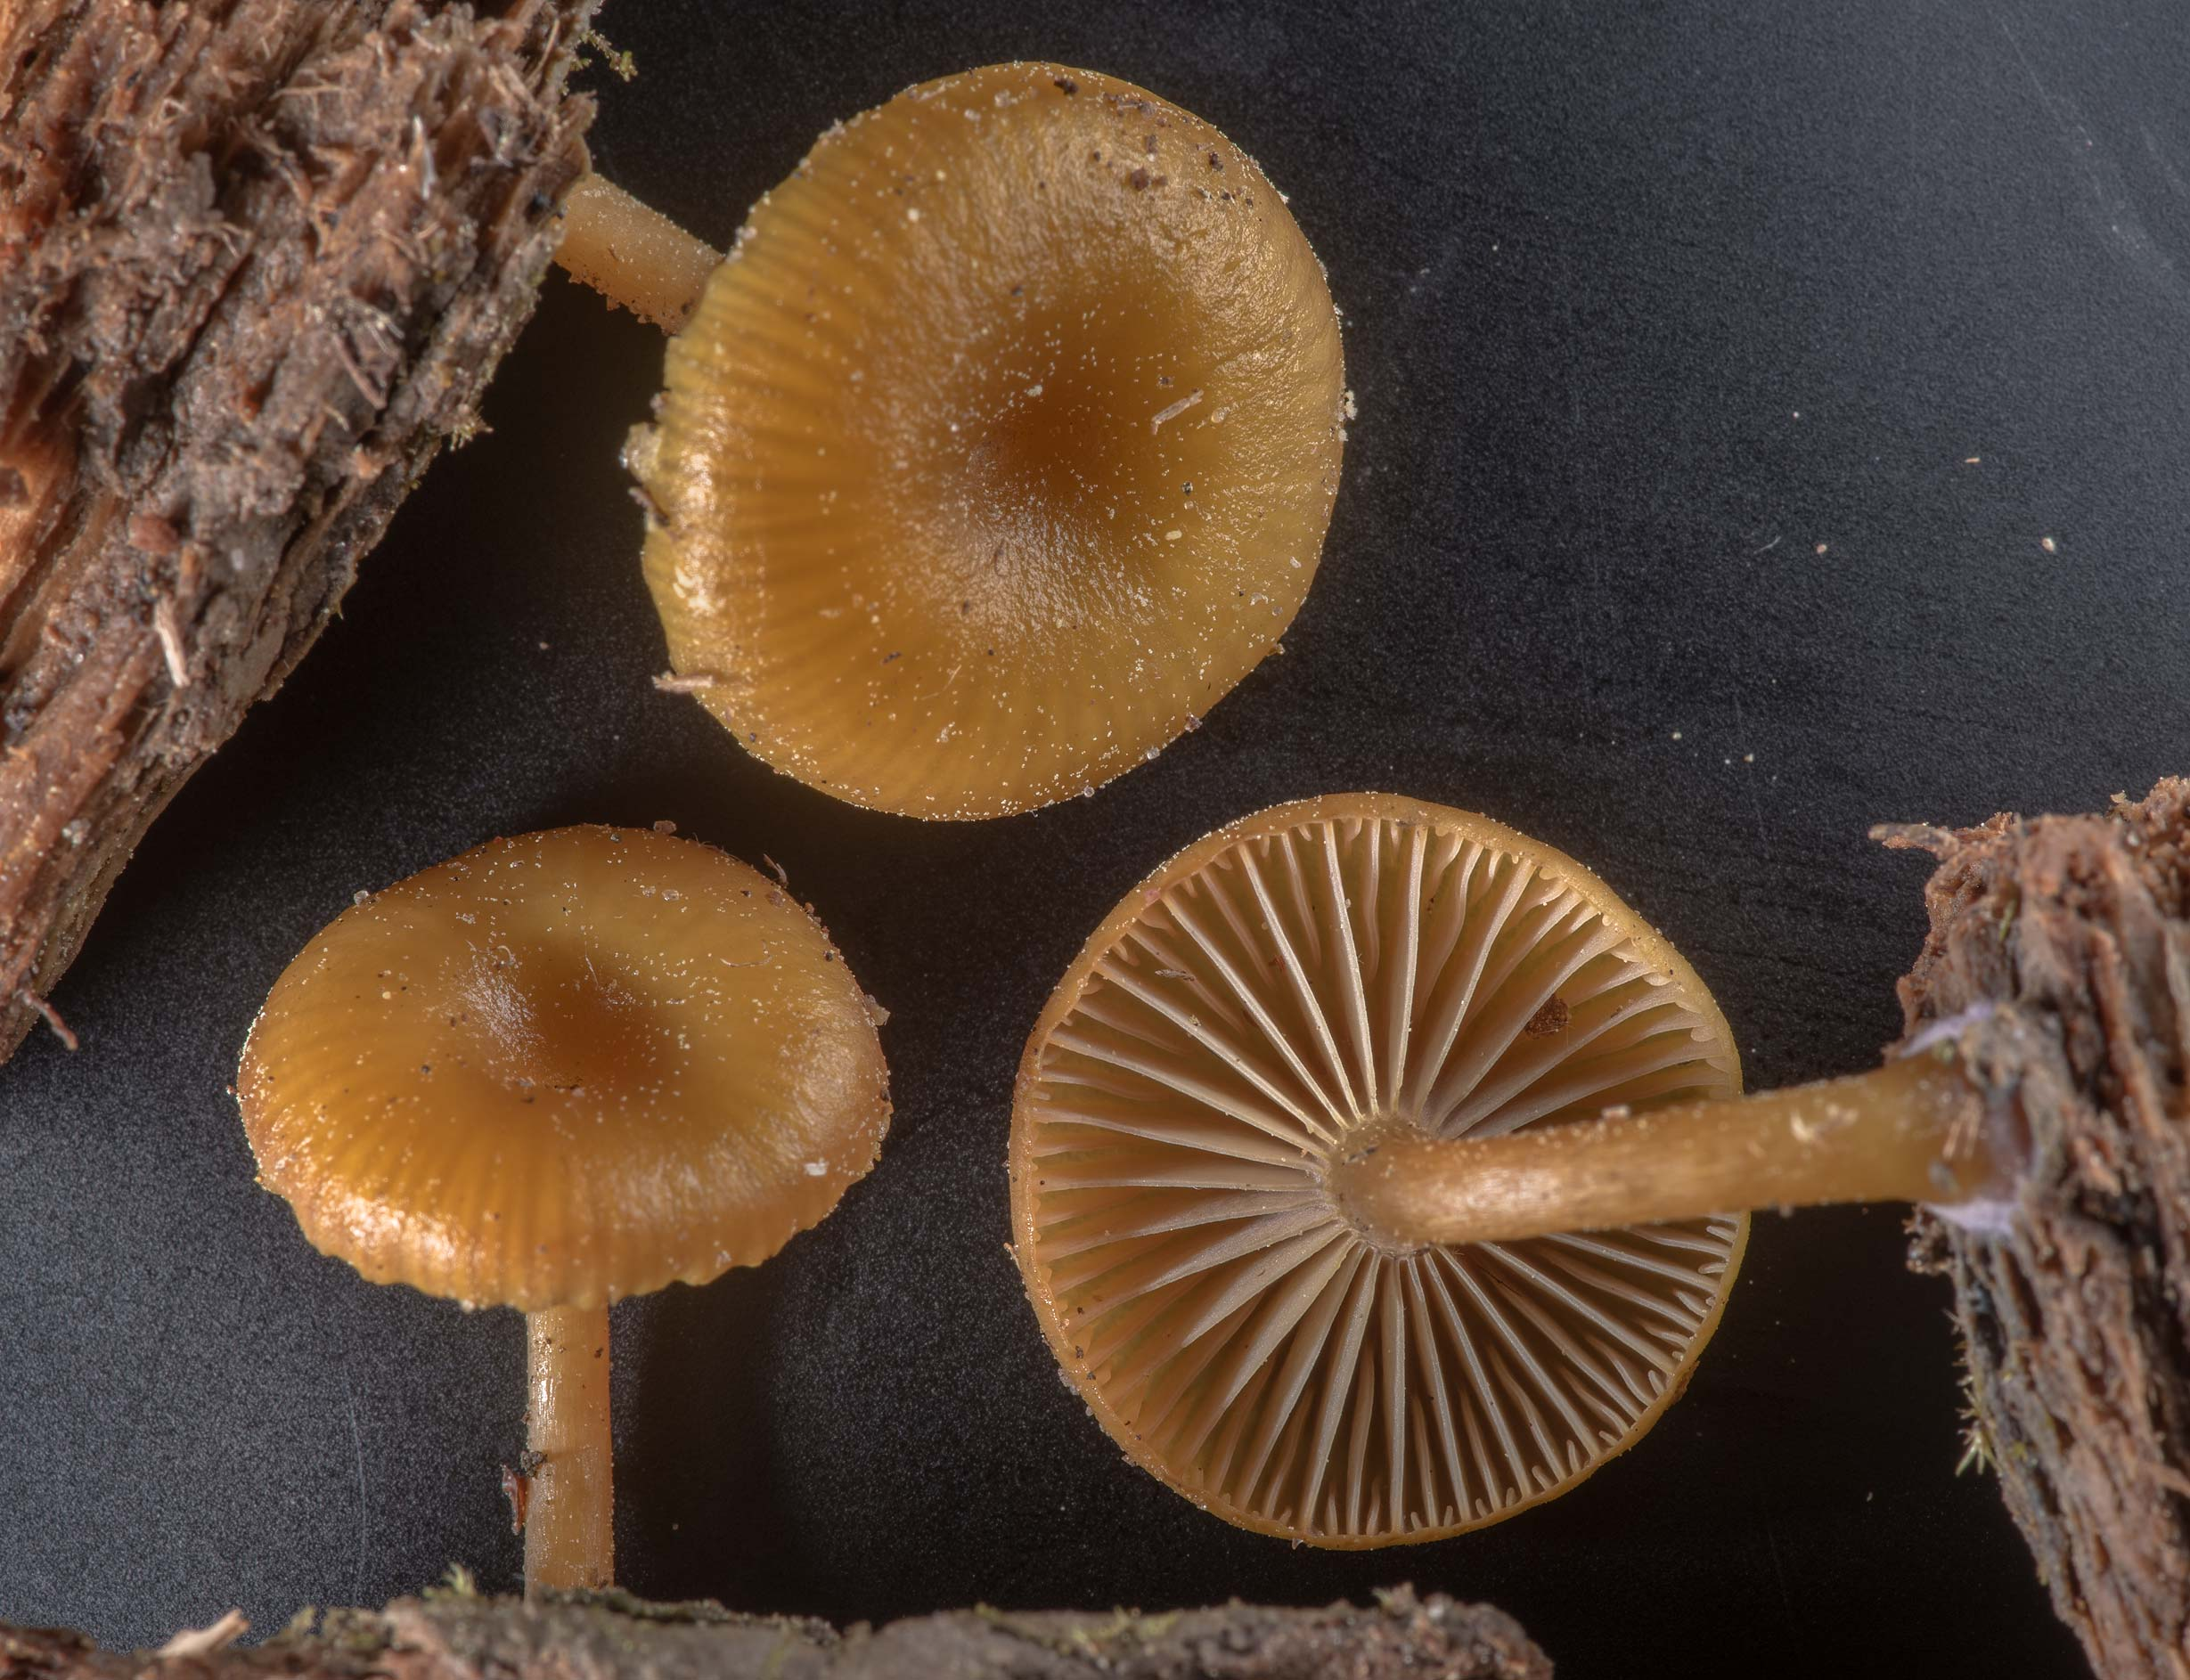 Mushrooms Chromosera cyanophylla with pieces of...National Forest near Huntsville. Texas